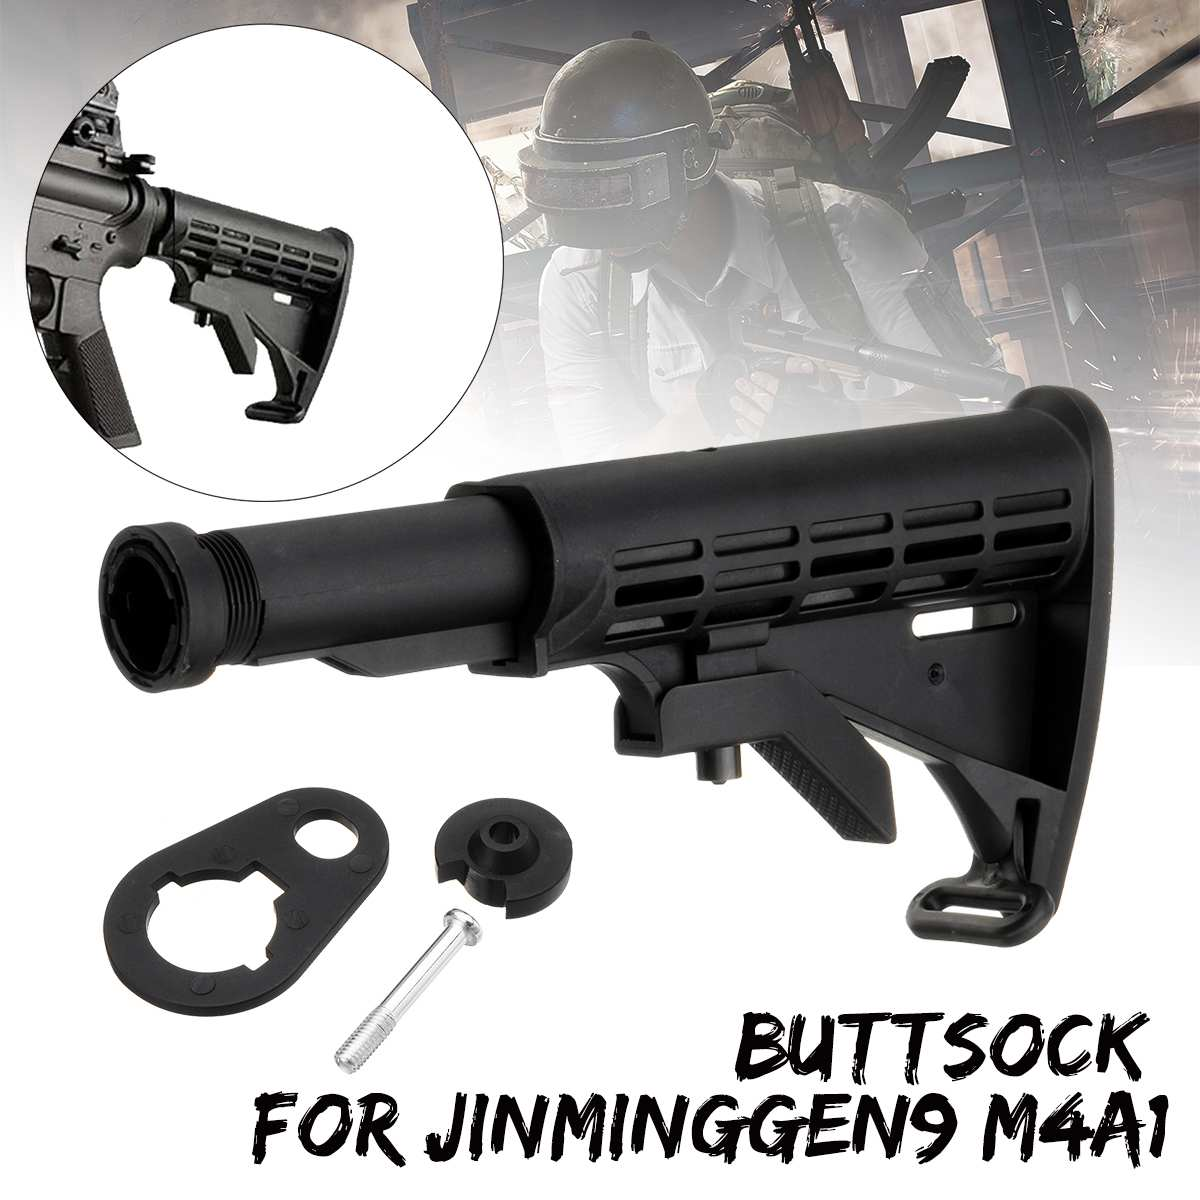 Buttsock Buffer Tube Jinming Gen9 M4a1 Gel Ball For Blaster Toy Upgrade Accessory